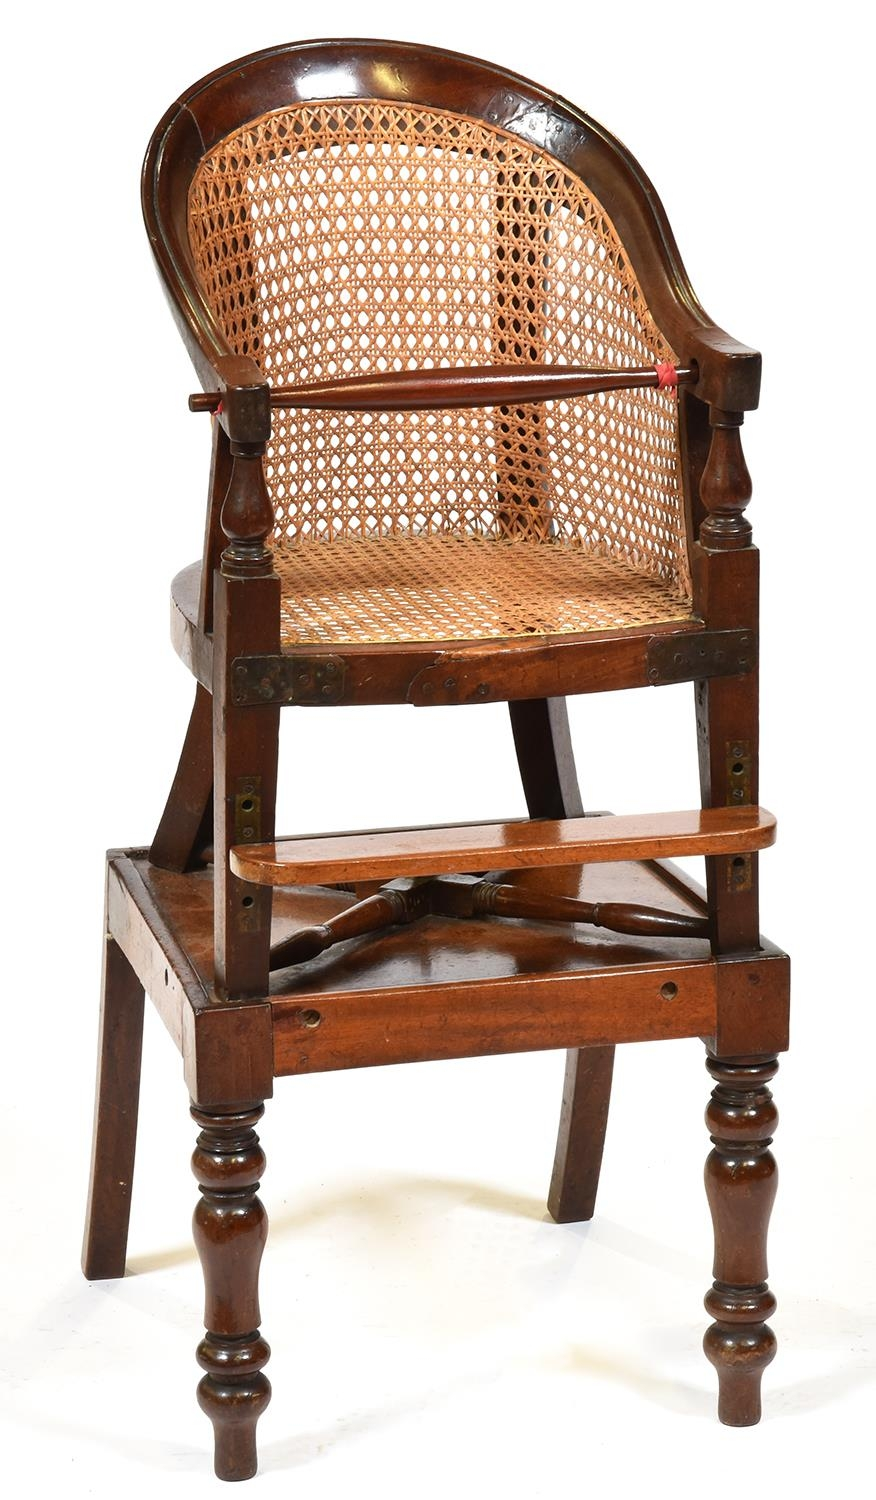 A Victorian mahogany and caned child's high chair and stand, mid 19th c Elements replaced; restored